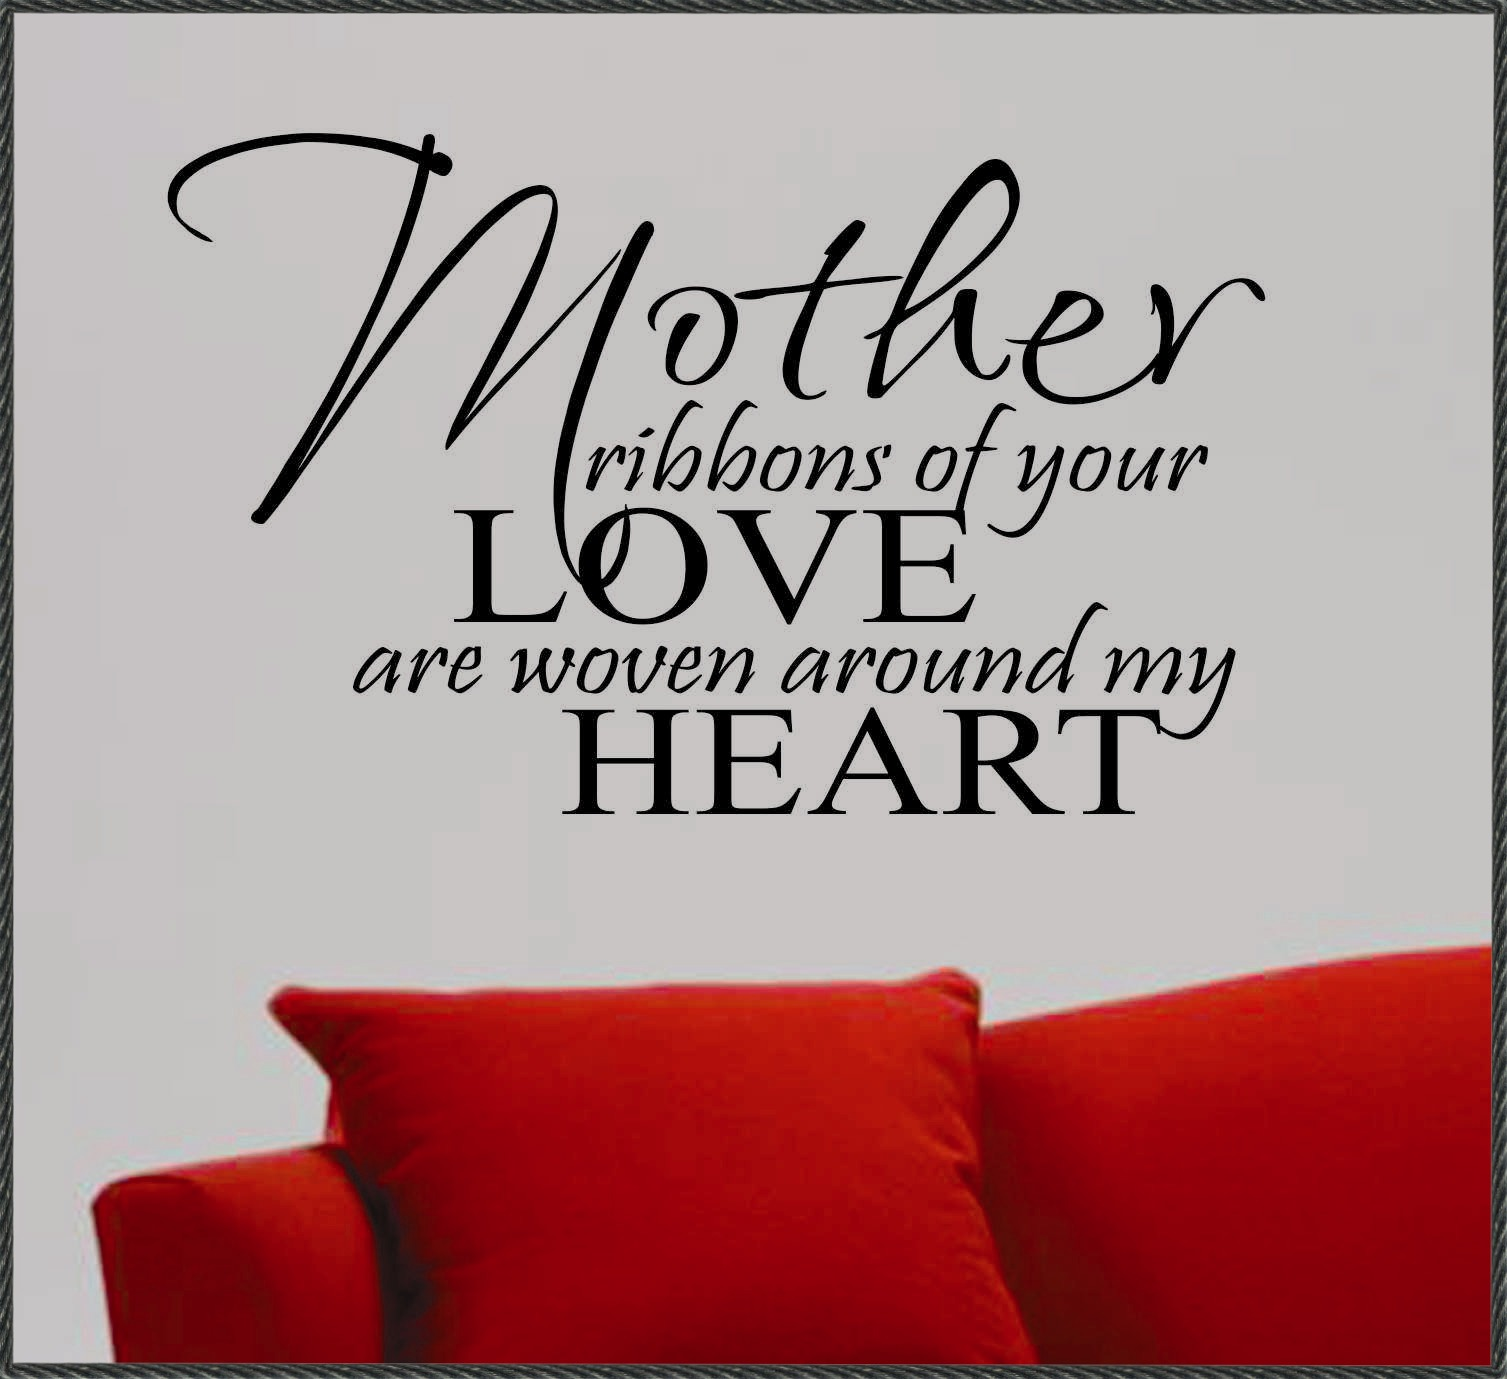 We Love You Mom Quotes Gorgeous Love Mom Wallpaper With Quote  Inspiring Quotes And Words In Life